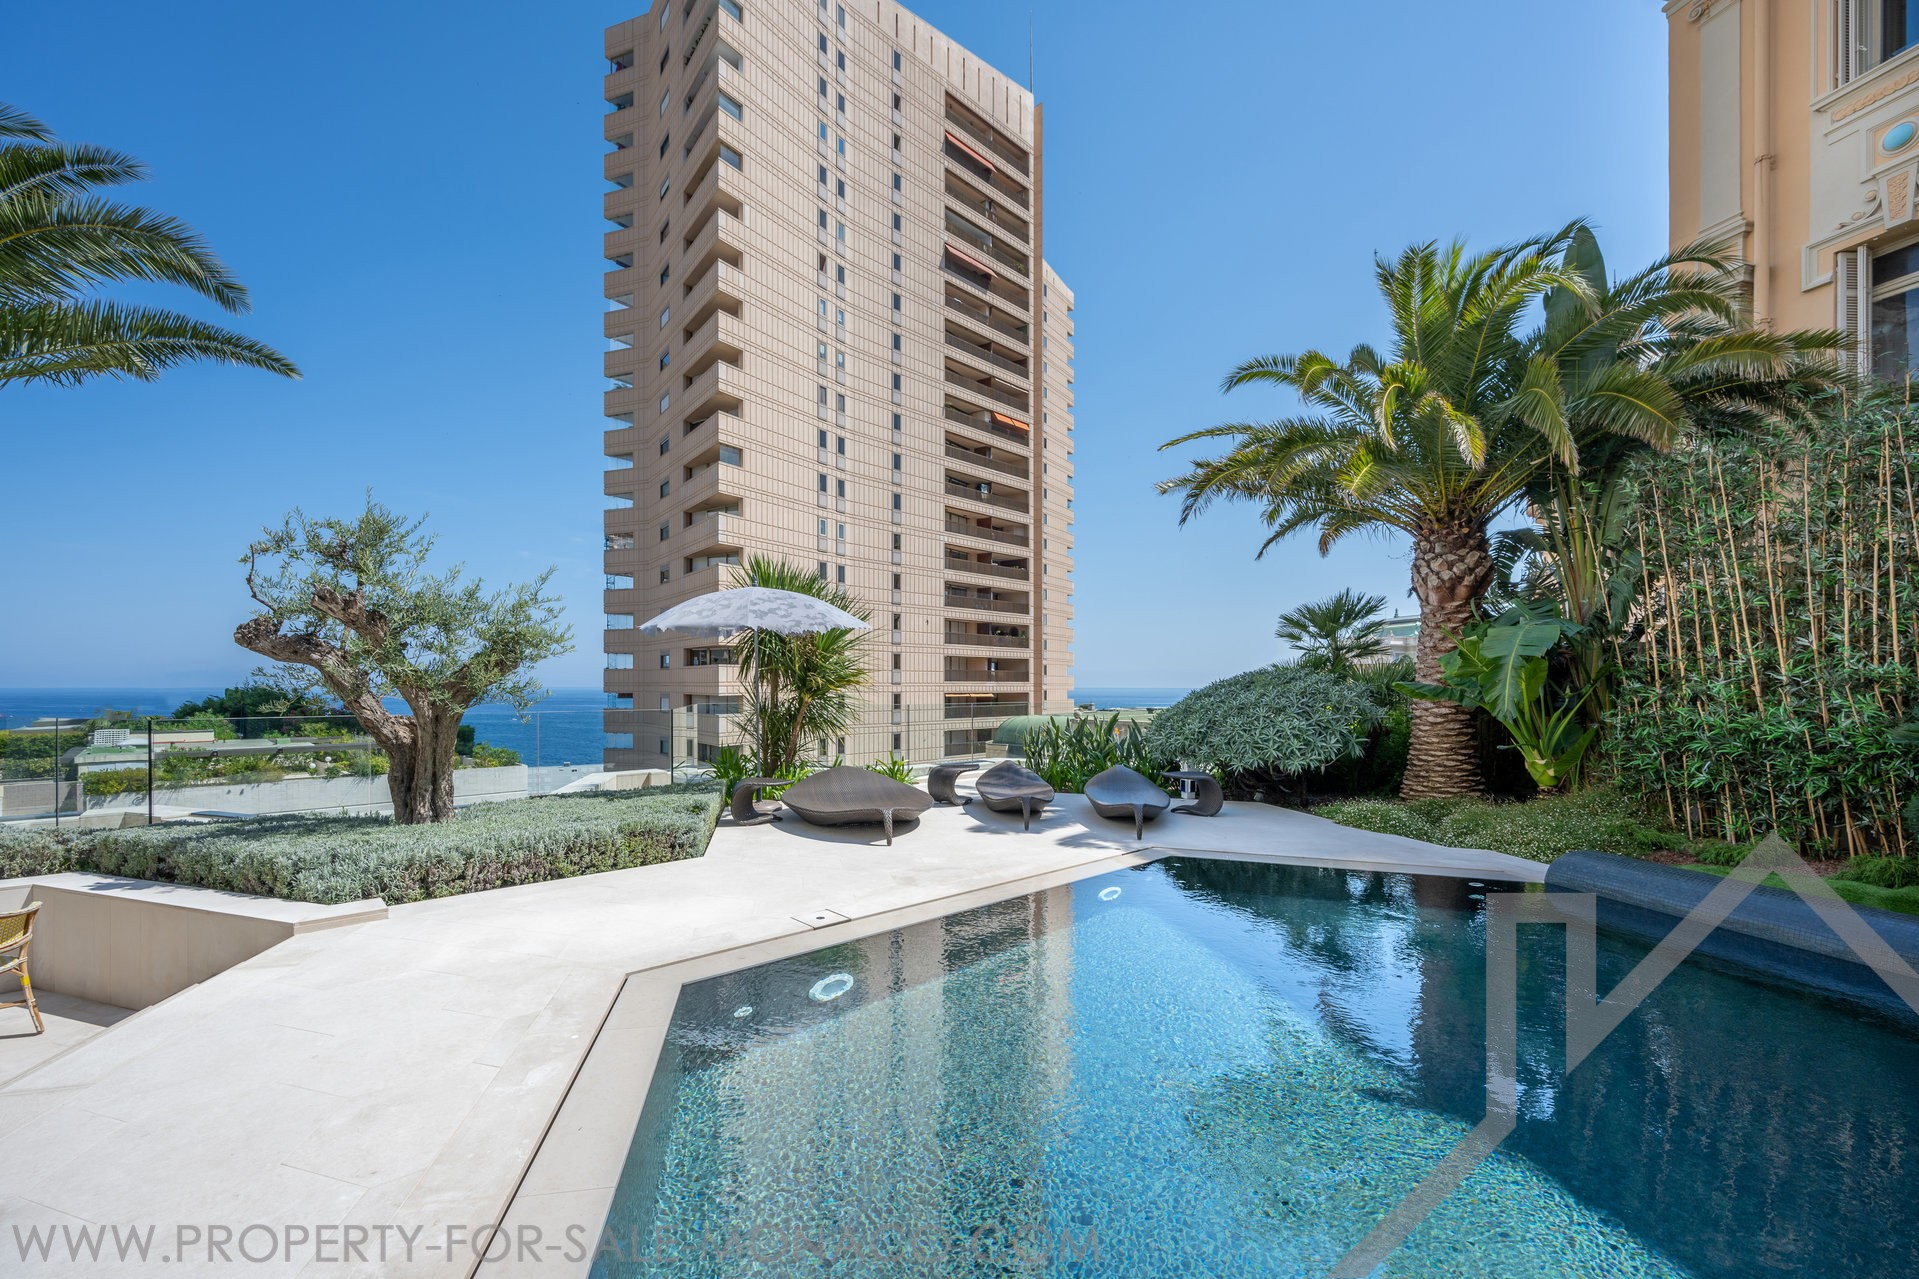 « Golden Square » – Le prince de Galles - 3 bedroom apartment wi - Properties for sale in Monaco